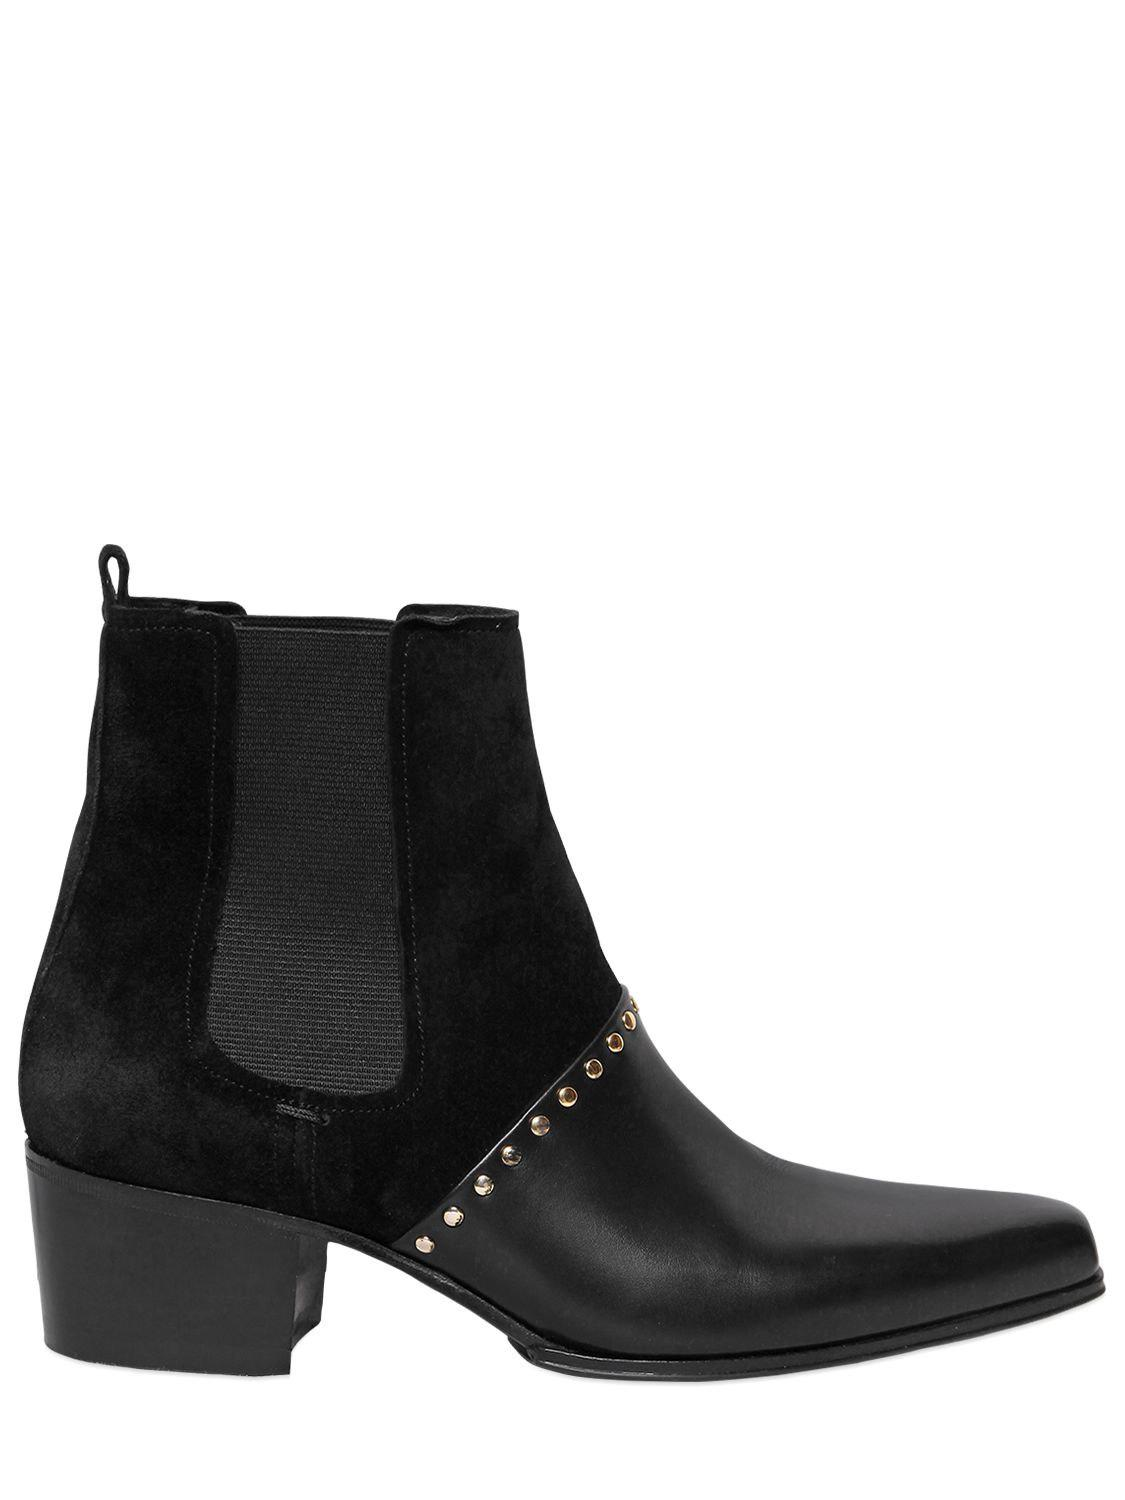 cheapest price cheap online websites online Suede Insert Leather Short Boots - Black 40 nicekicks online discount for cheap 5XWs7OCsg